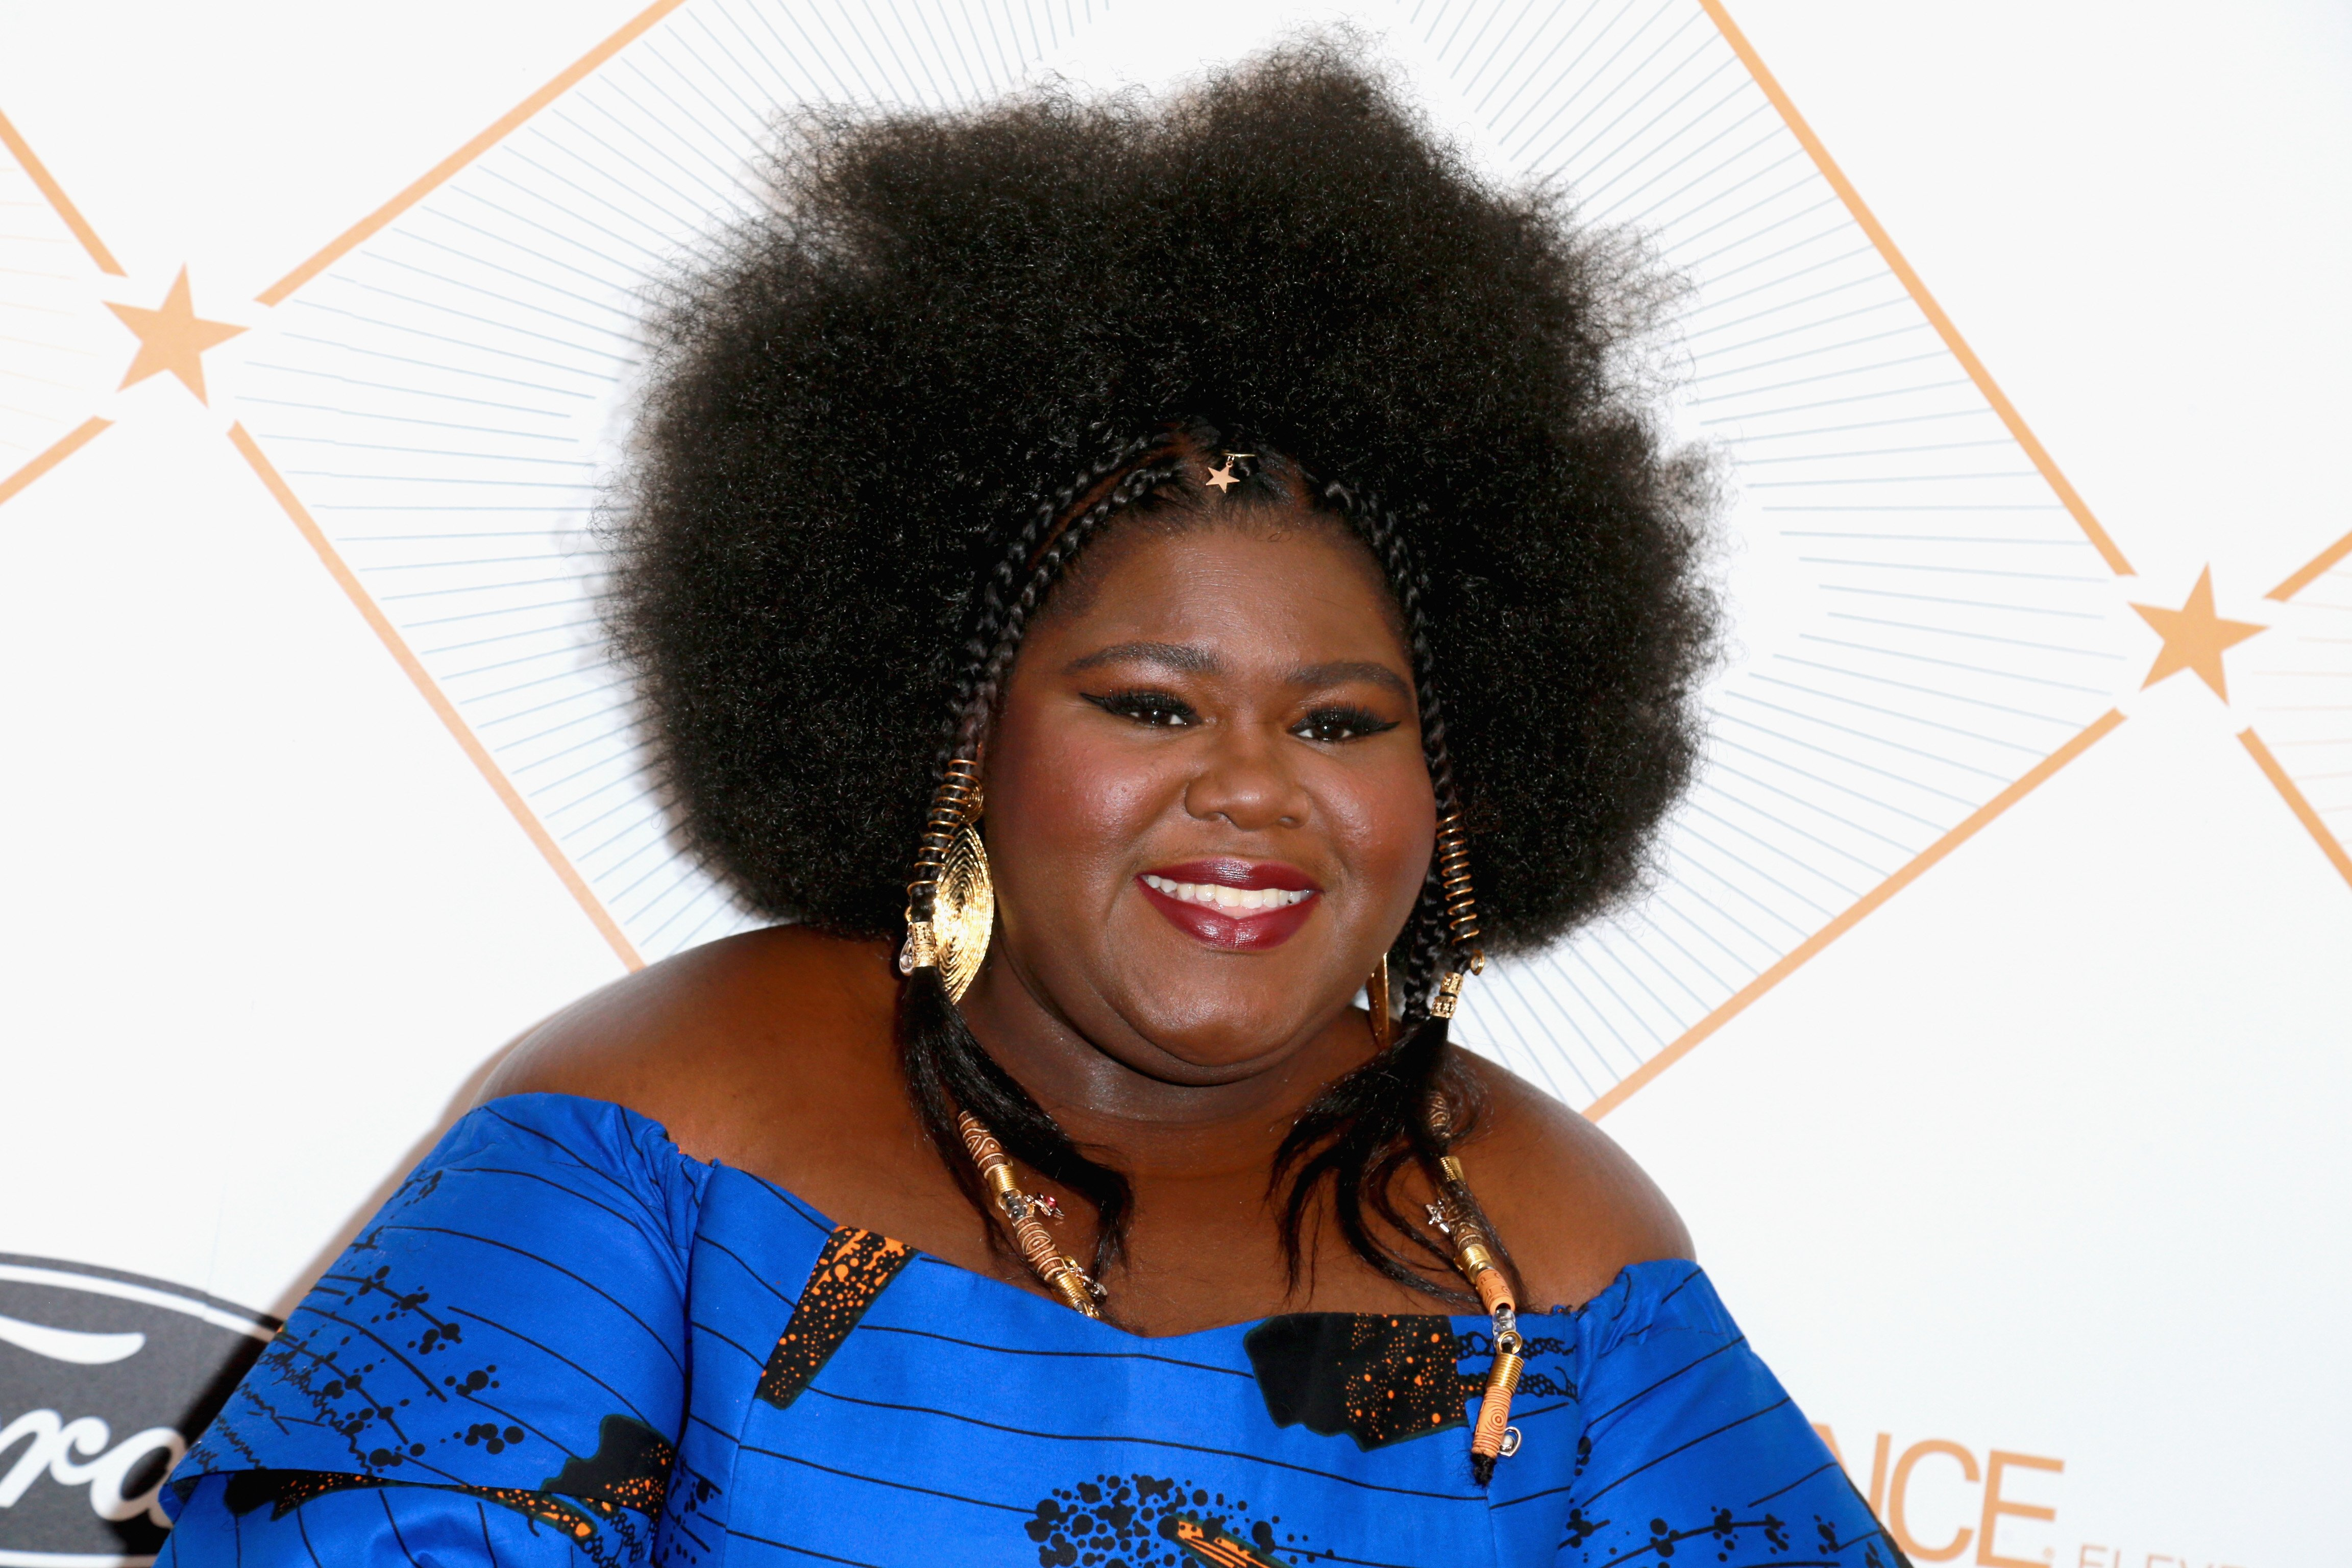 Gabourey Sidibe pictured at the 2018 Essence Black Women In Hollywood Oscars Luncheon on Mar. 1, 2018.   Photo: Getty Images